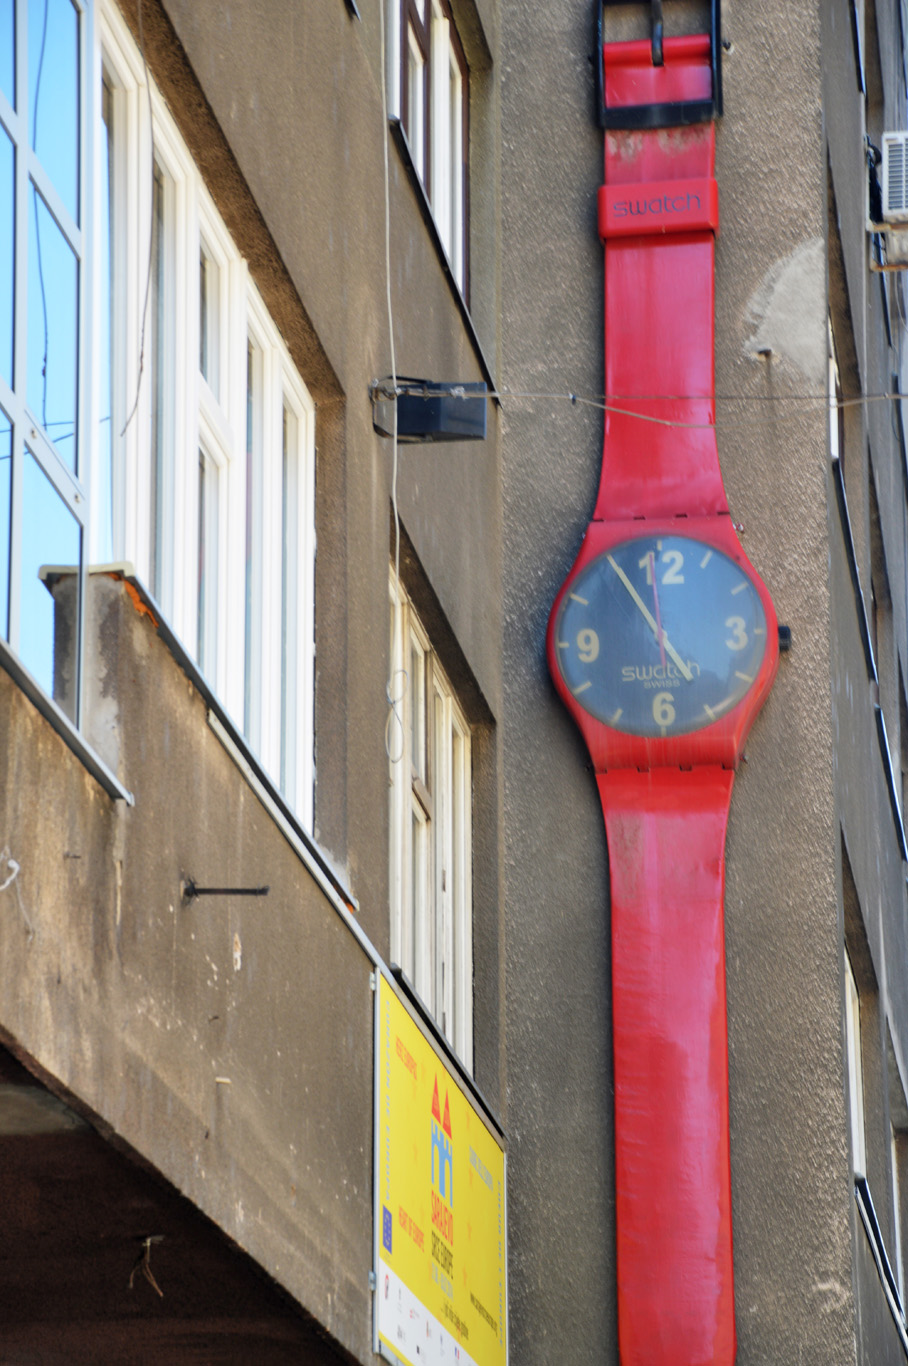 A watch on the wall of one of the buildings